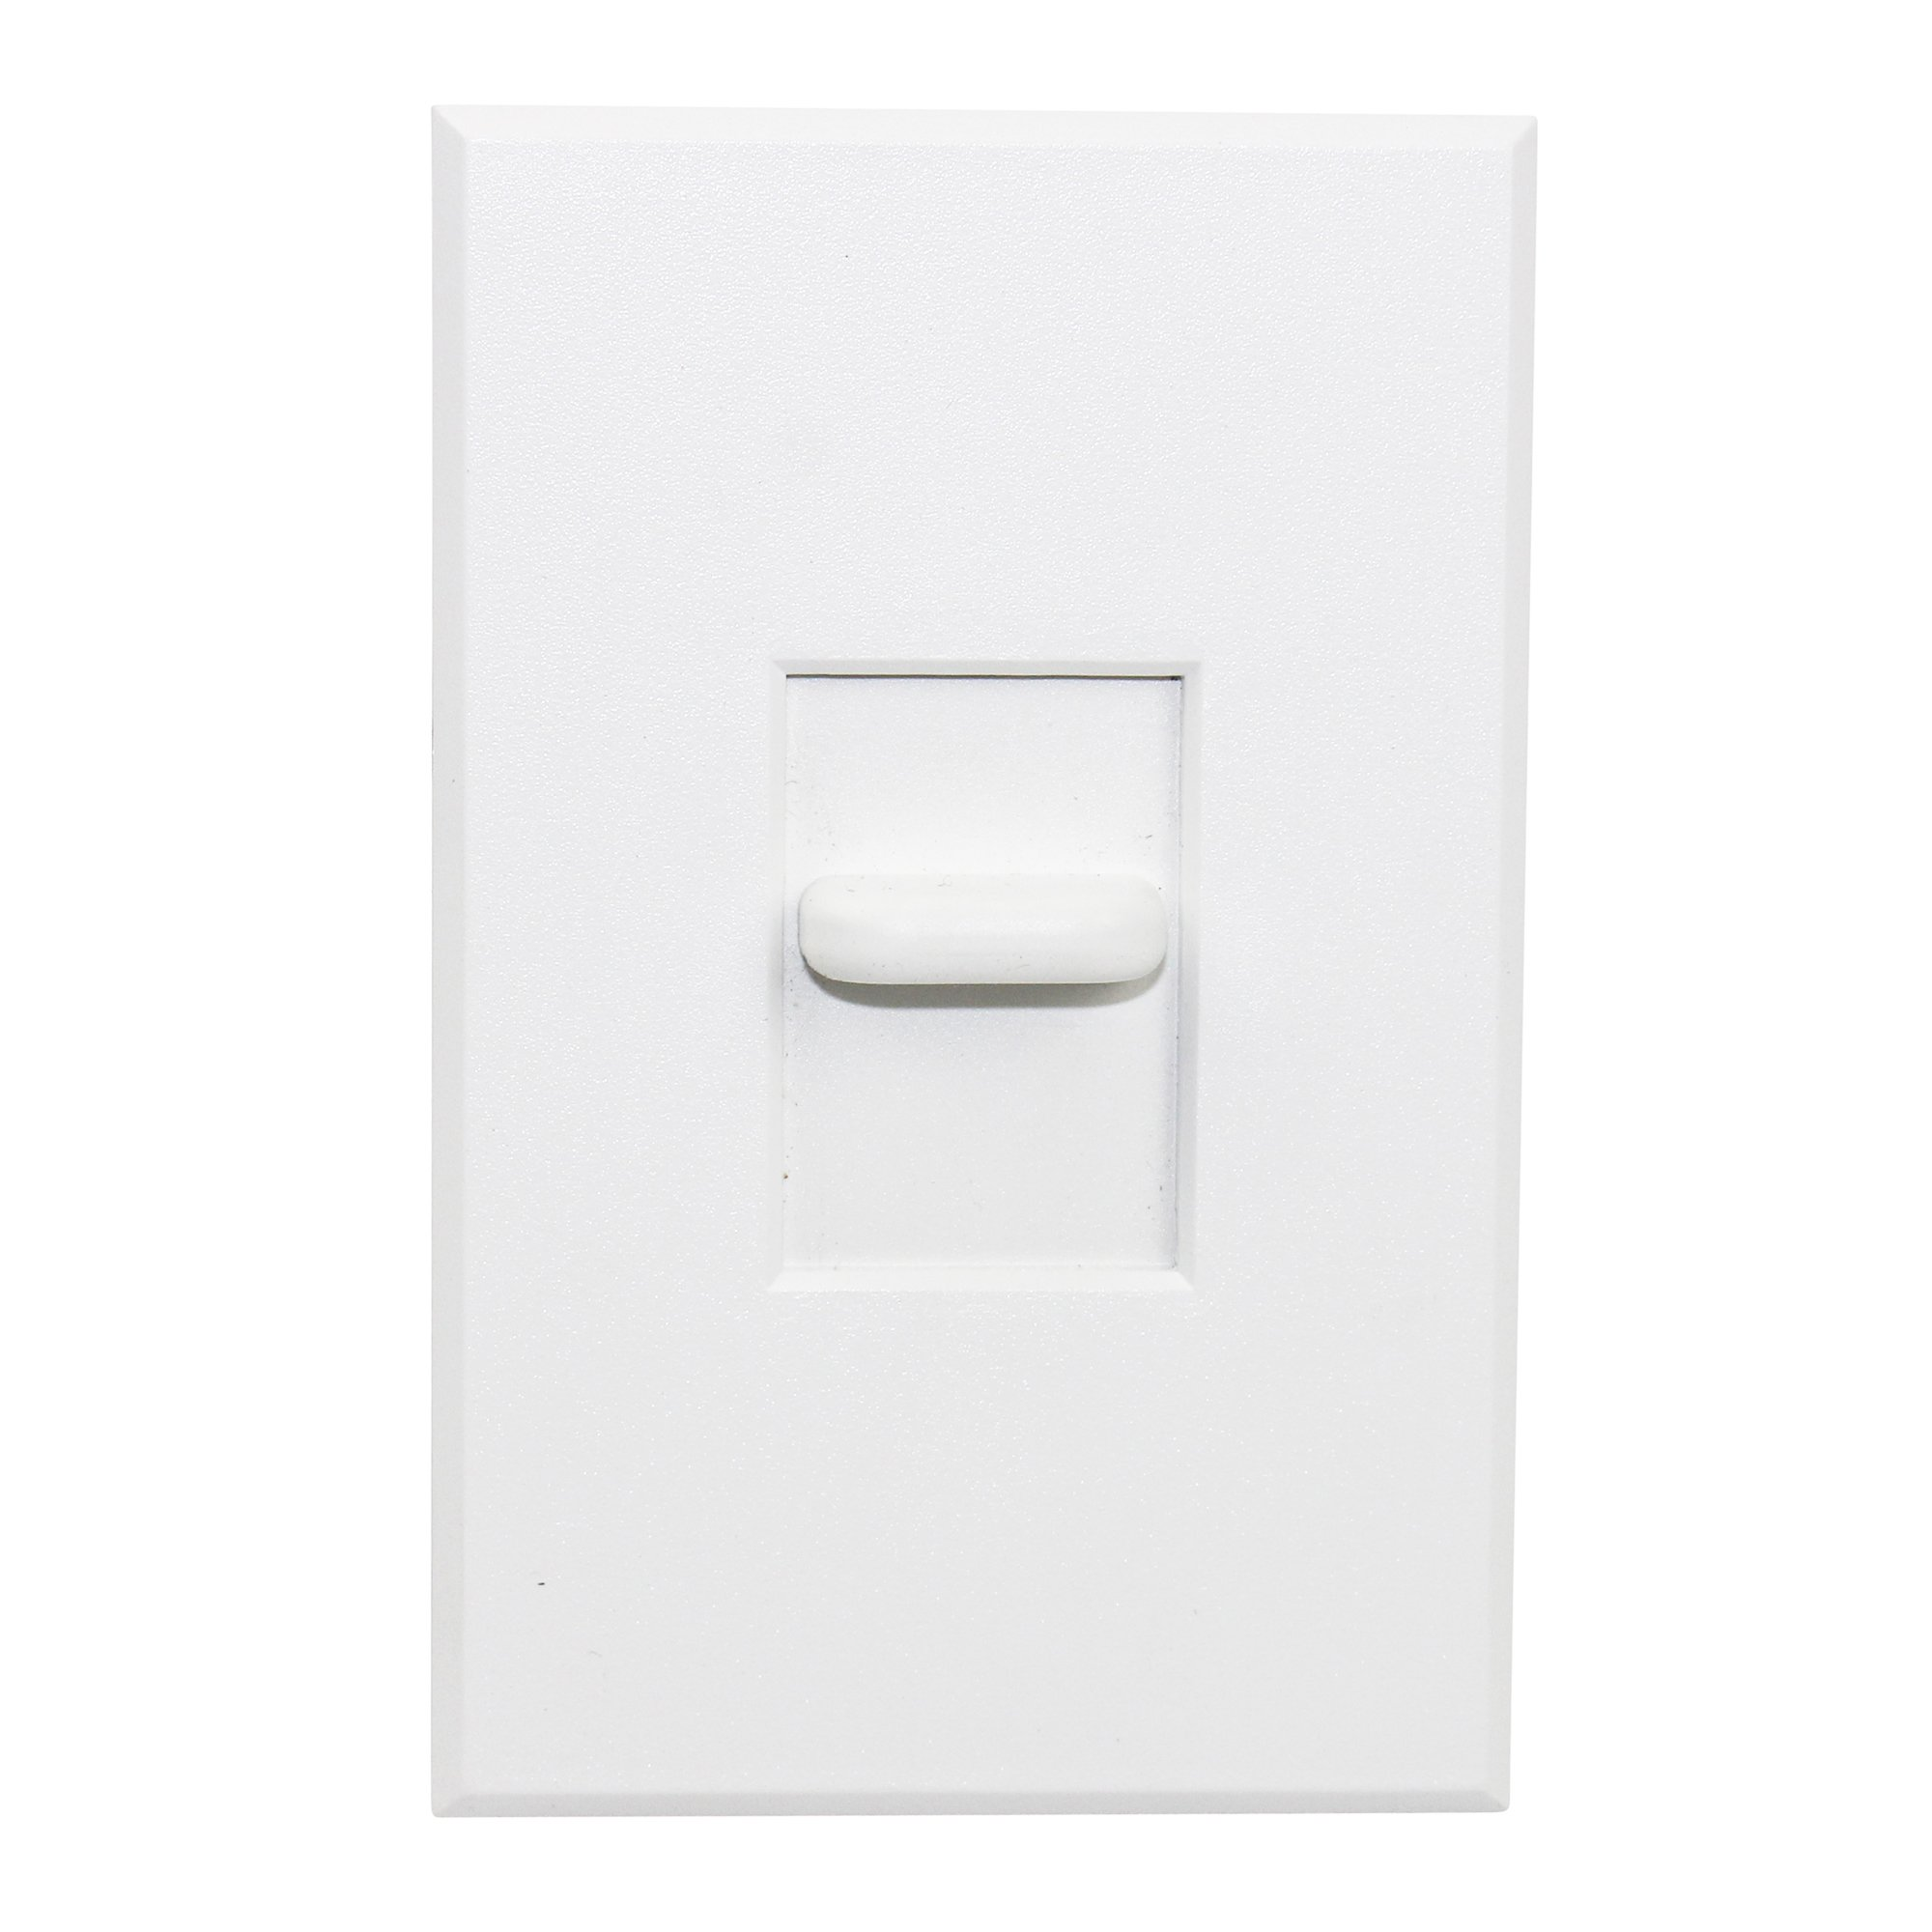 Lightolier V600VAUW Vega Heat Sink Slide Dimmer 120/277V 60Hz Low Voltage, White by Lightolier